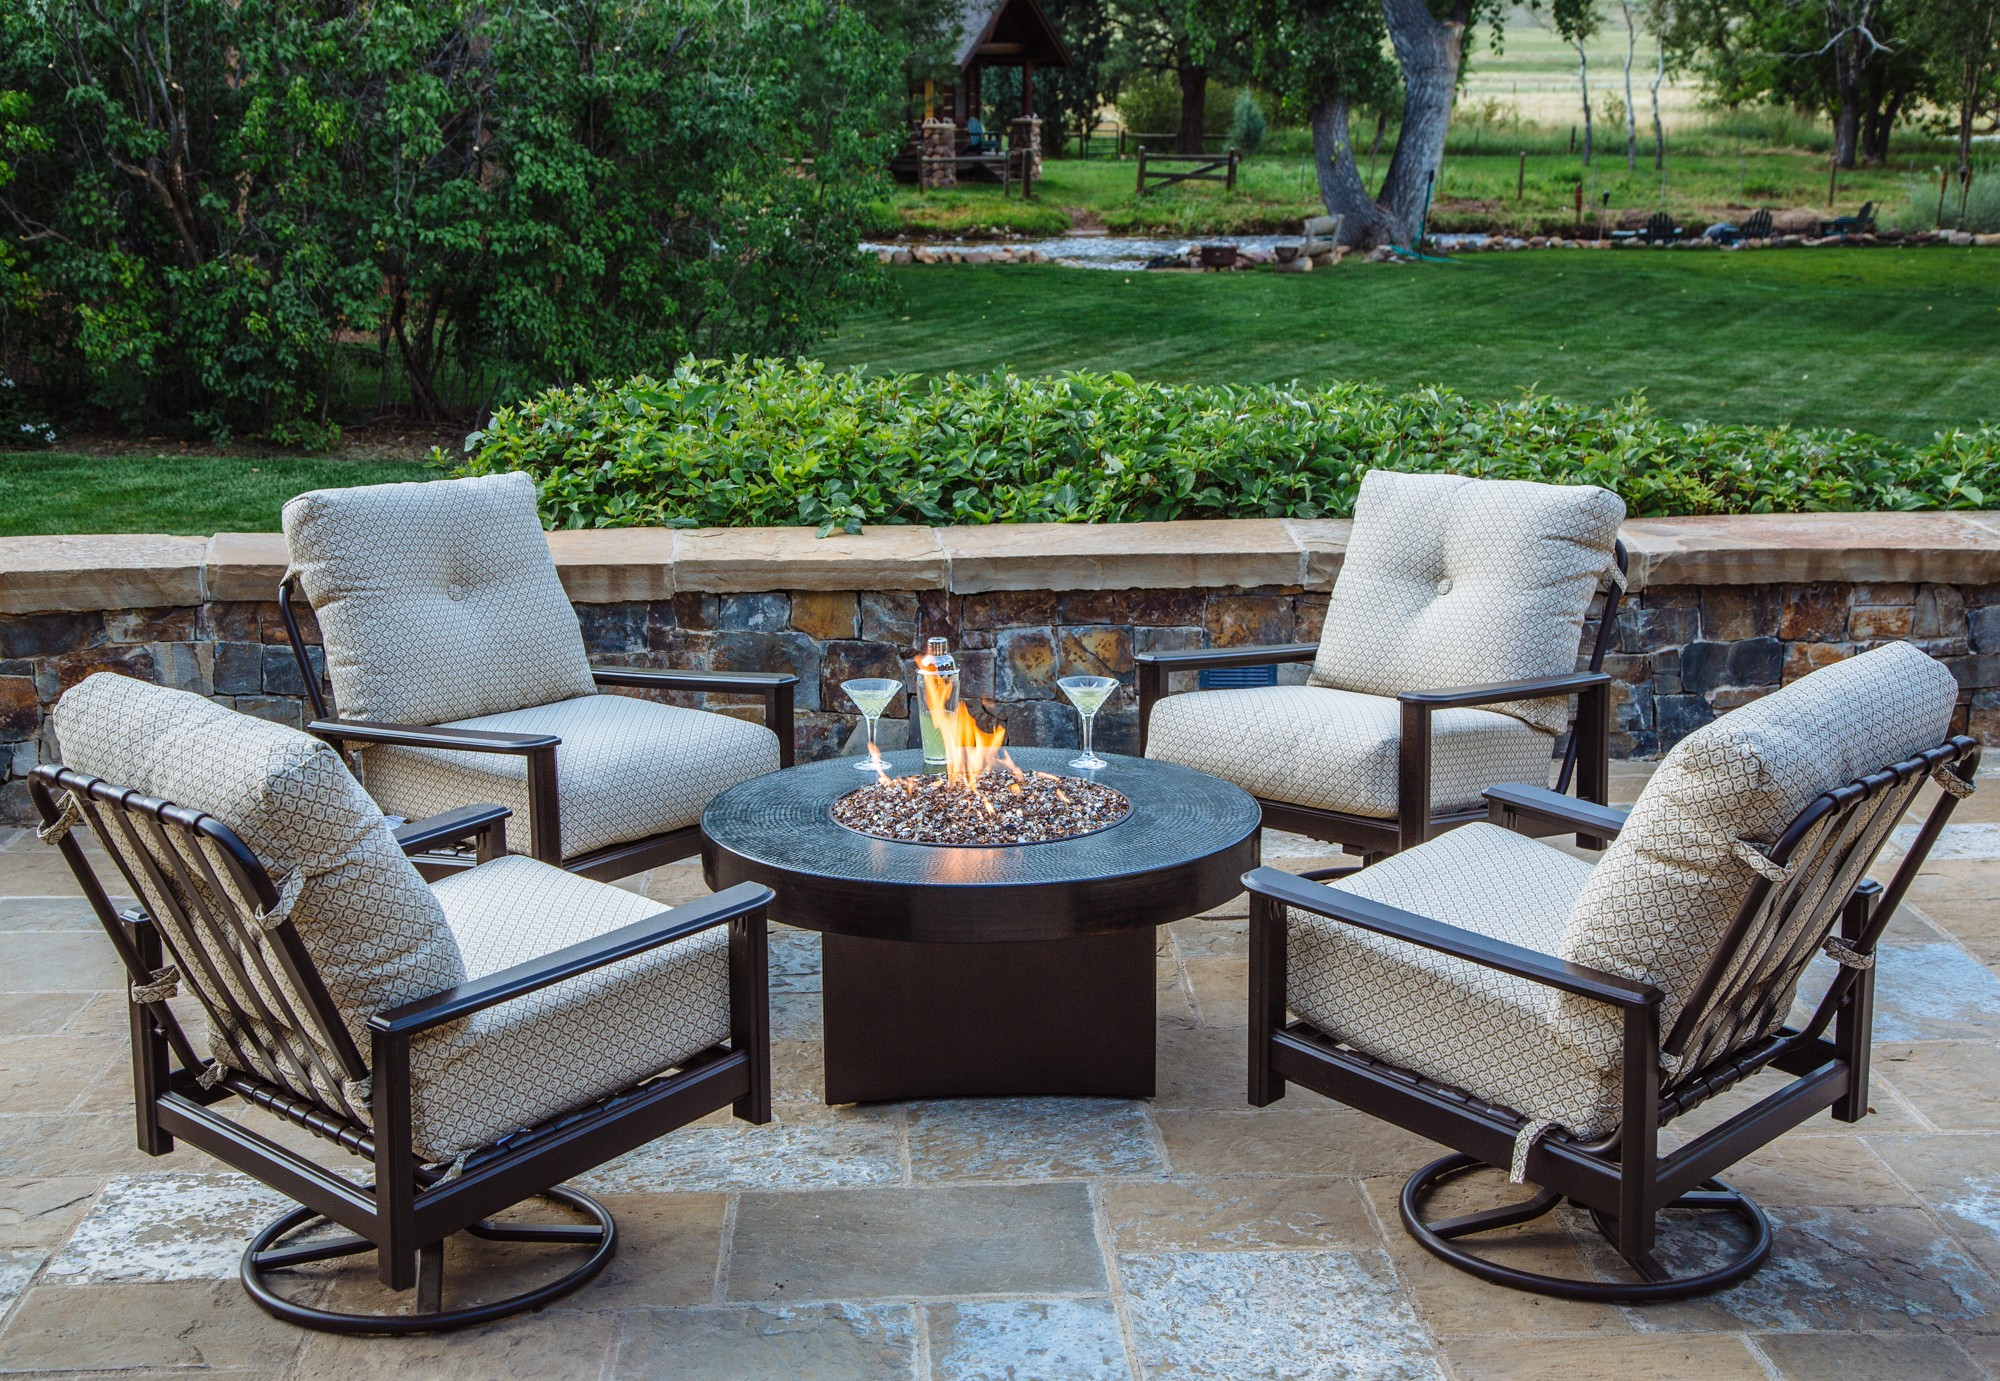 Copper Fire Pit Table Hammered Copper Fire Pit Table intended for dimensions 2000 X 1381